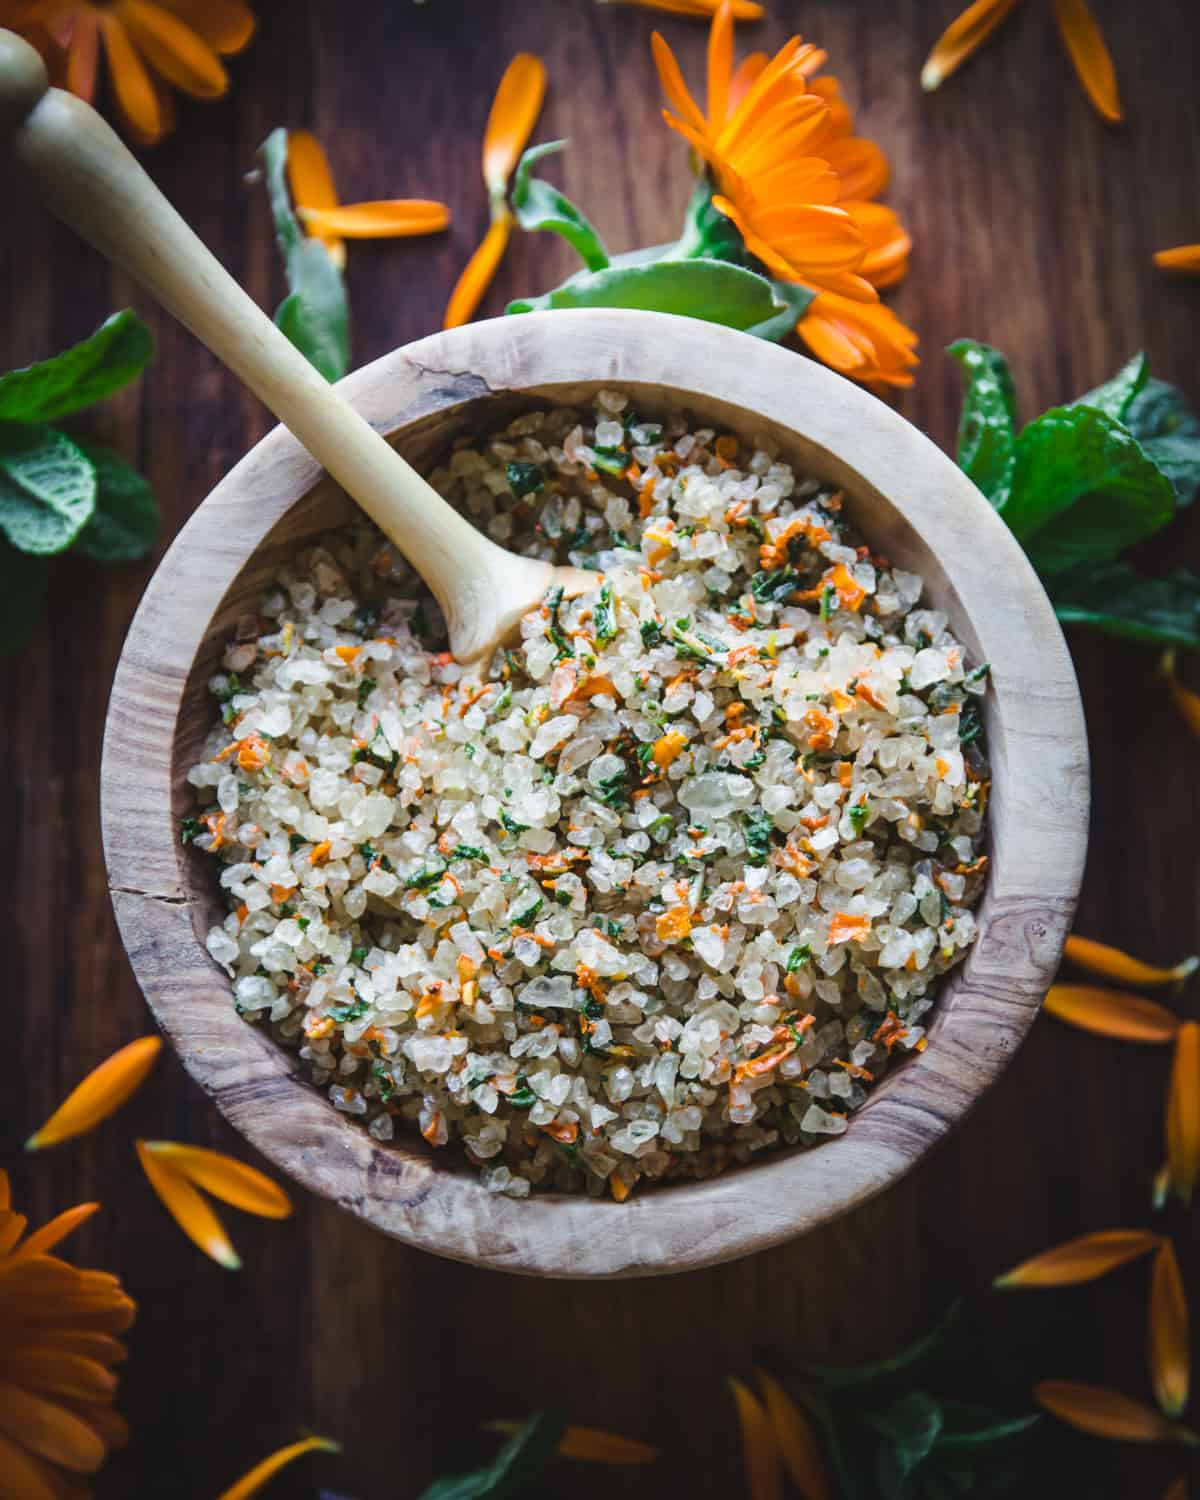 top view of a bowl of herbal bath salt with calendula and mint